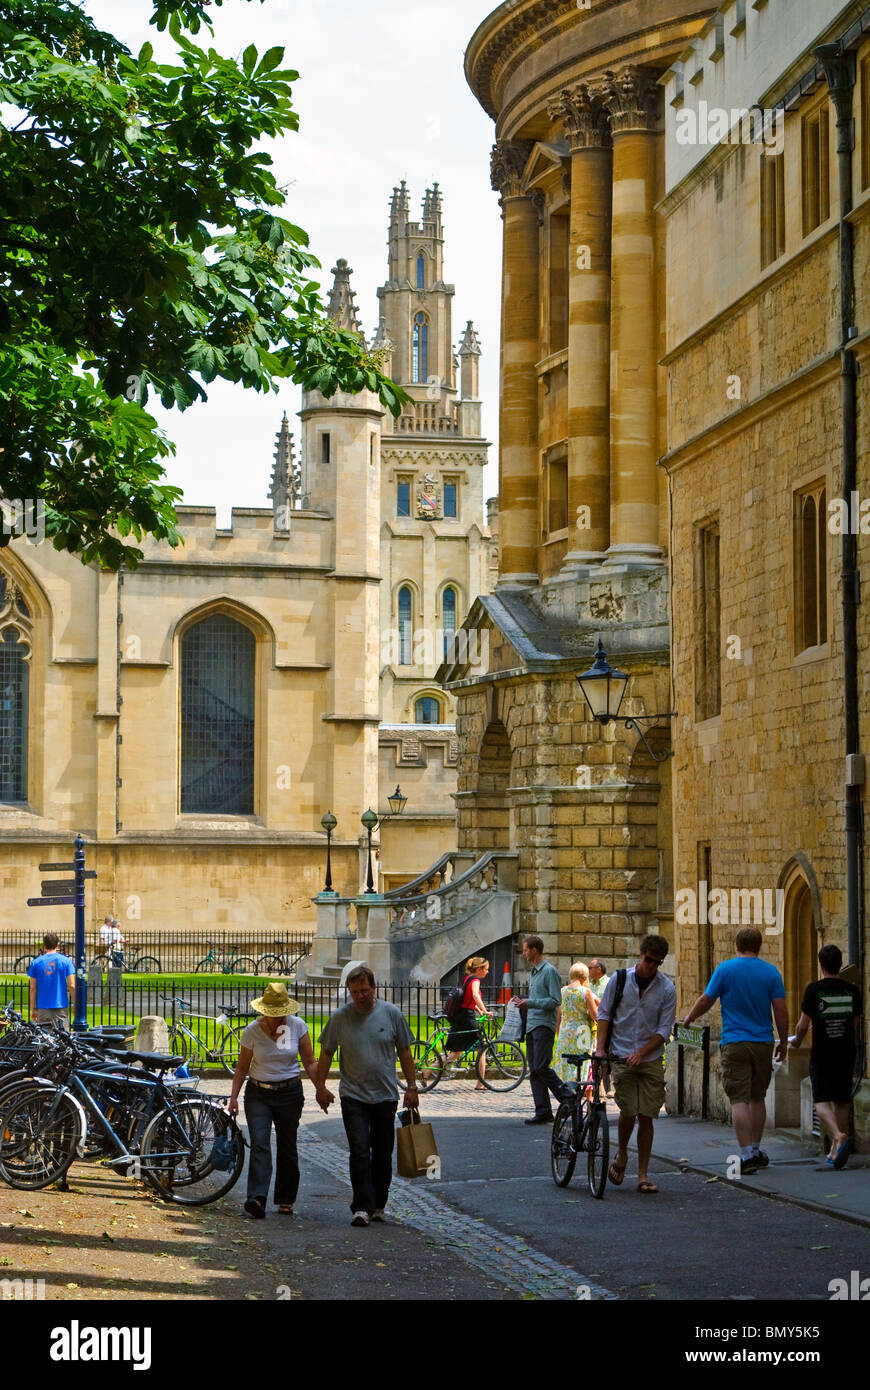 Brasenose Lane, Oxford, England - Stock Image